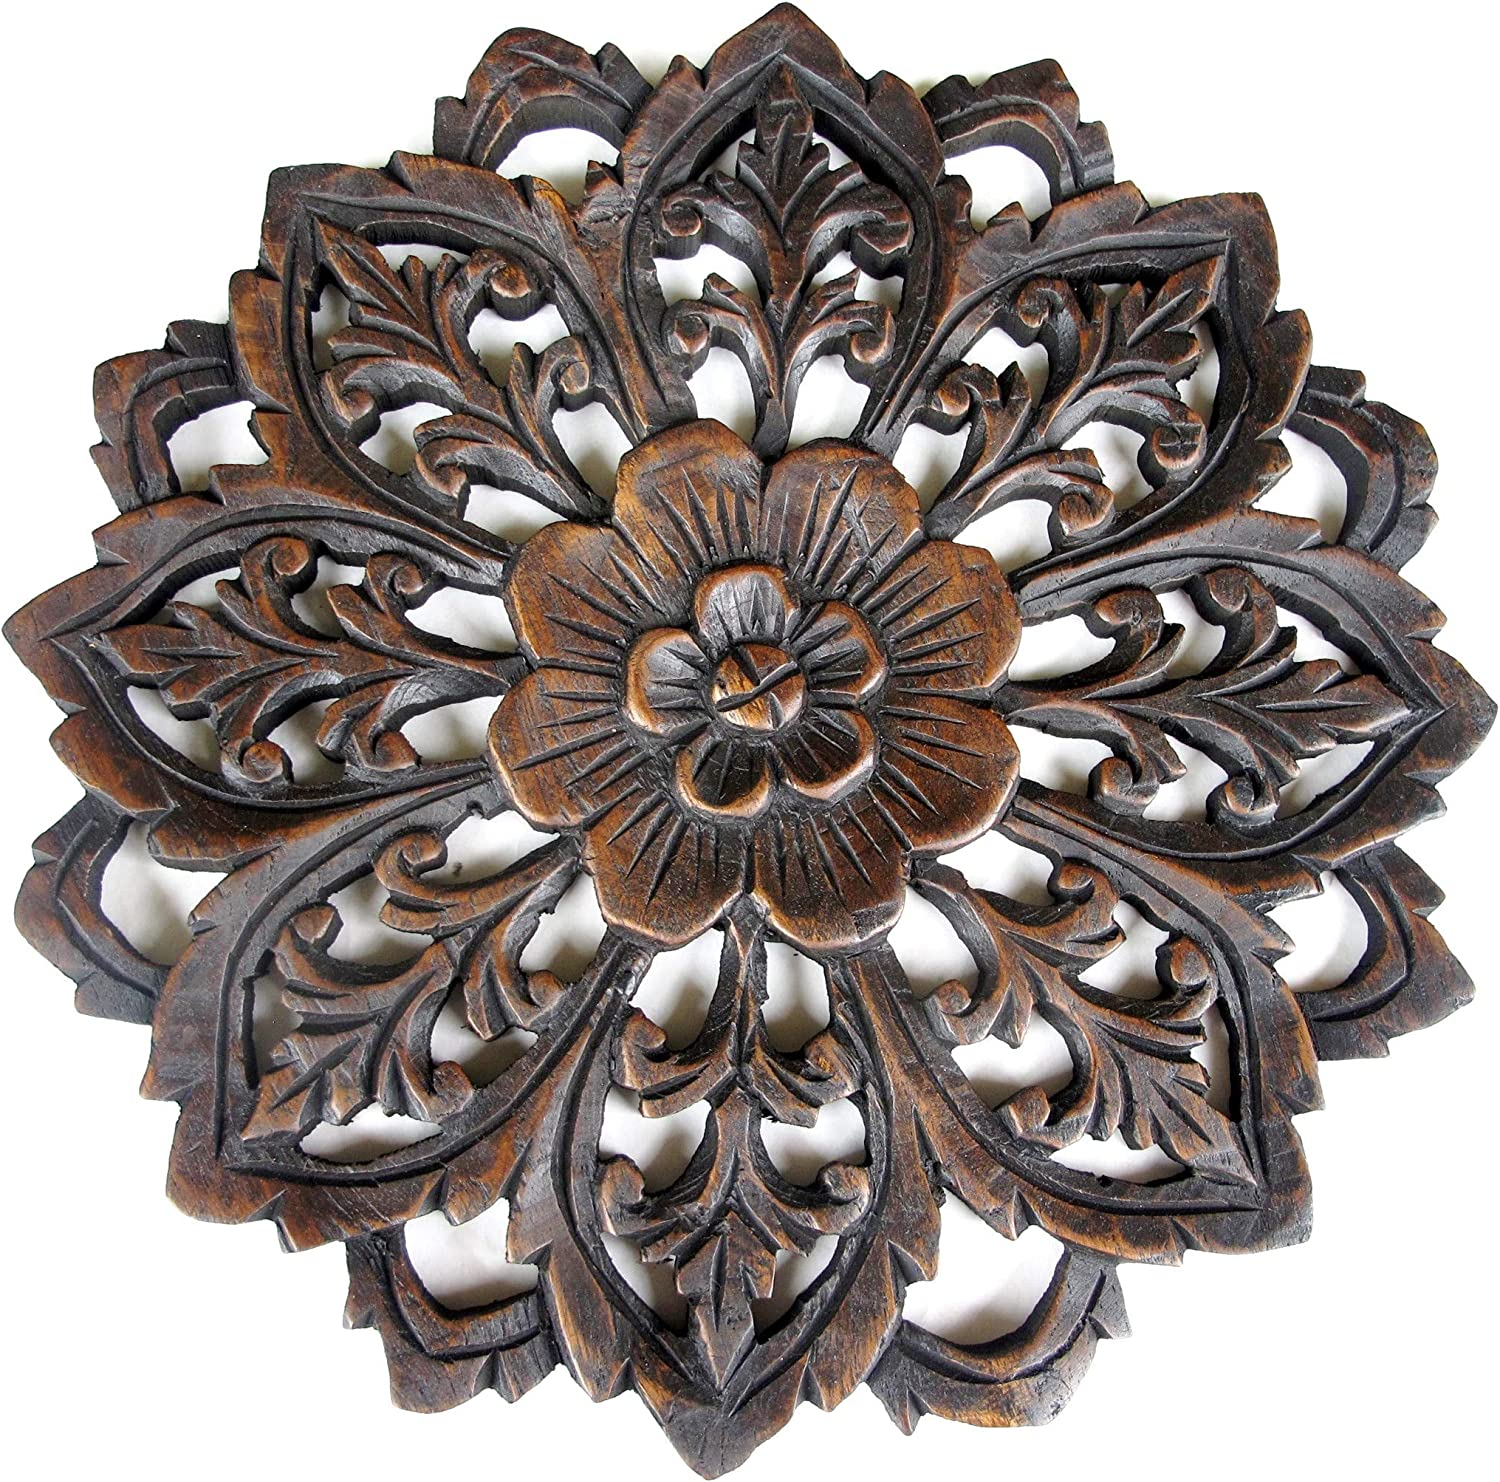 Teak Wood Wall Panel - Thailand Wooden Carving - Relief Panel Art -12 Inches (Round Dark Spear 11.5